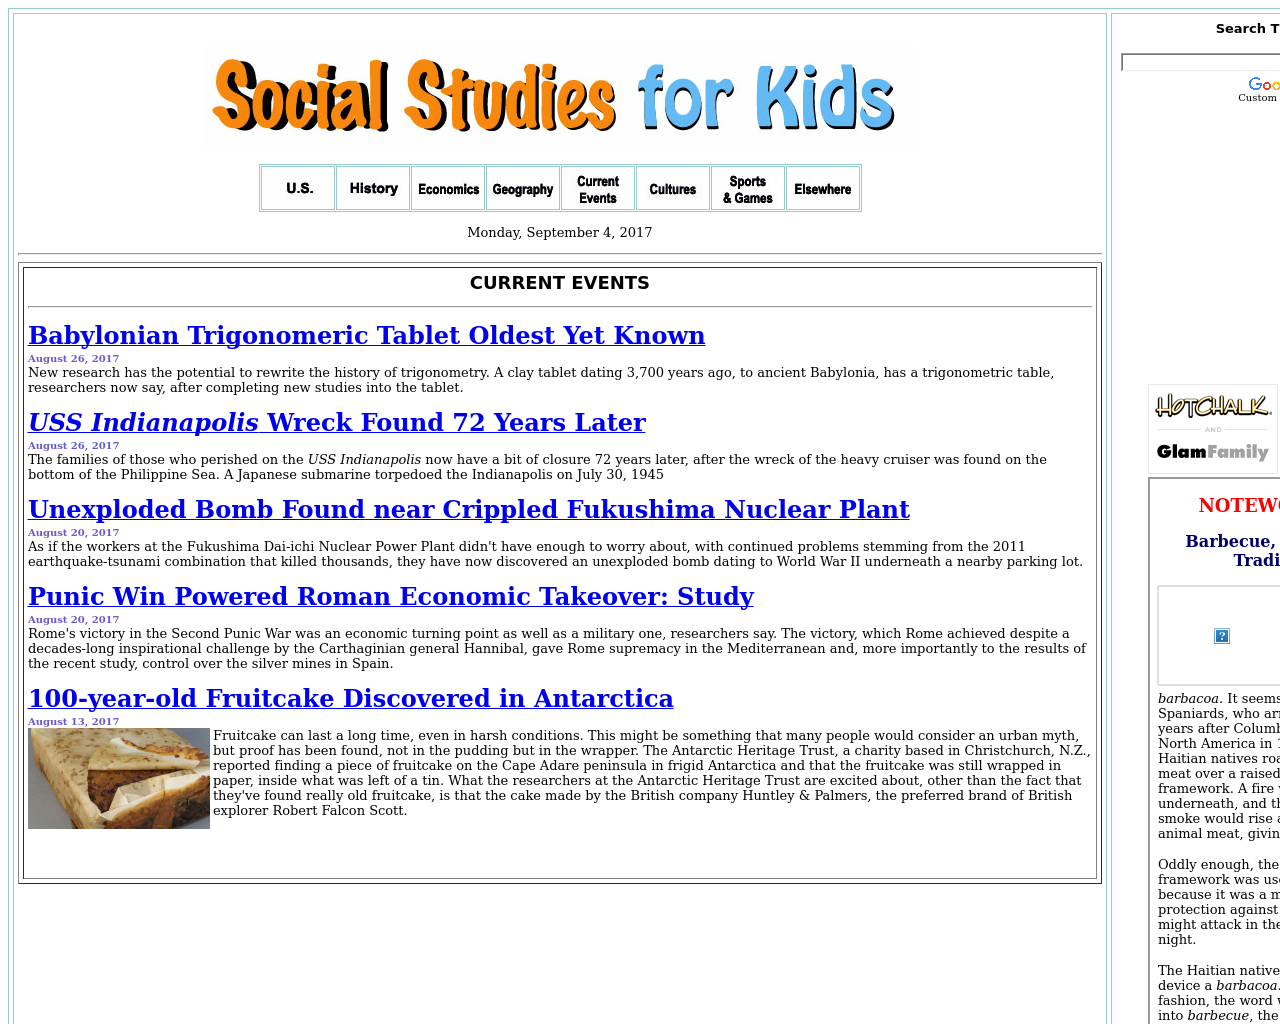 Social-Studies-For-Kids-Advertising-Reviews-Pricing